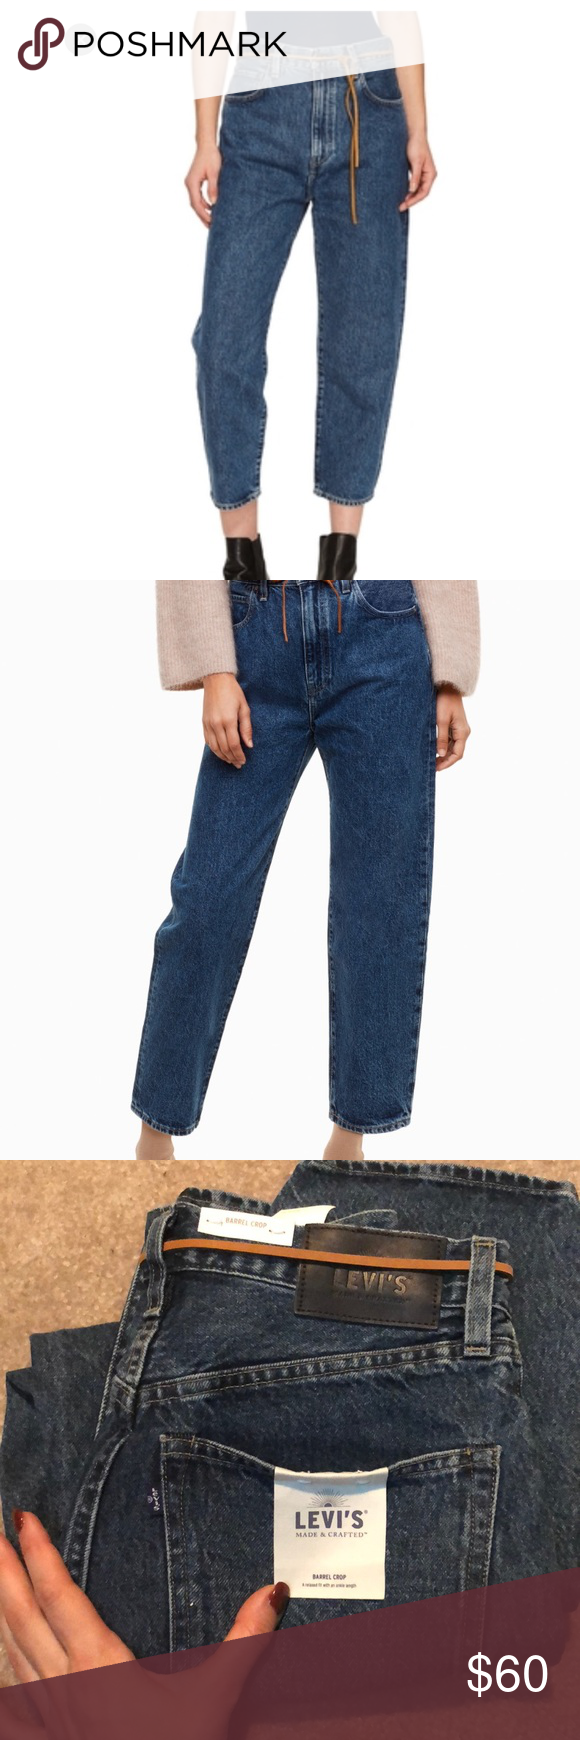 13++ Levis made crafted the column jeans ideas in 2021